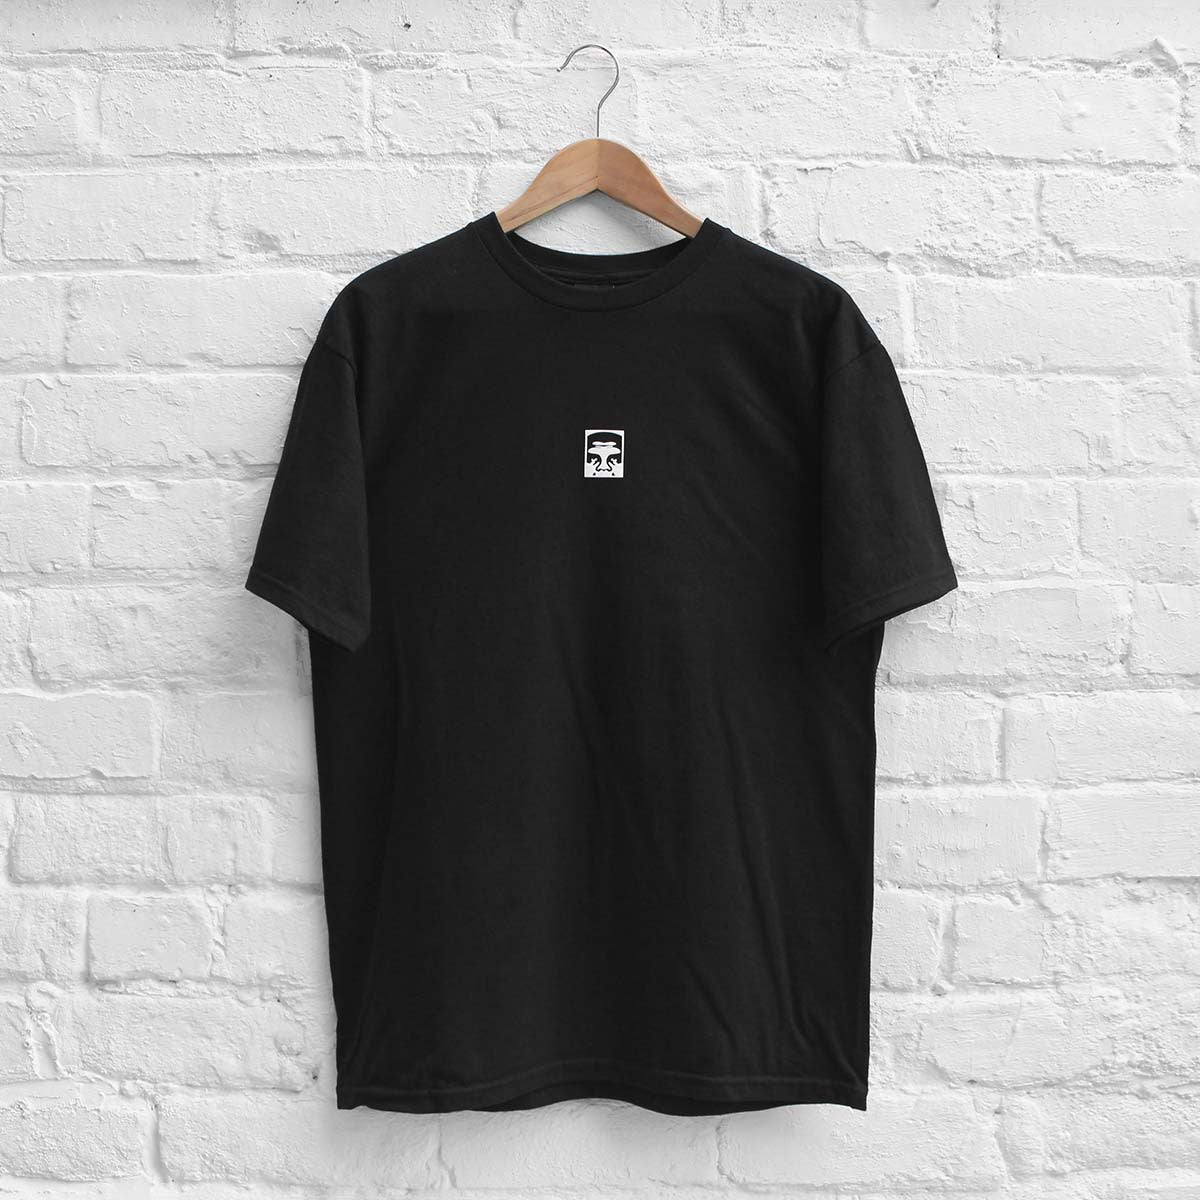 Obey Half Face T-Shirt Black